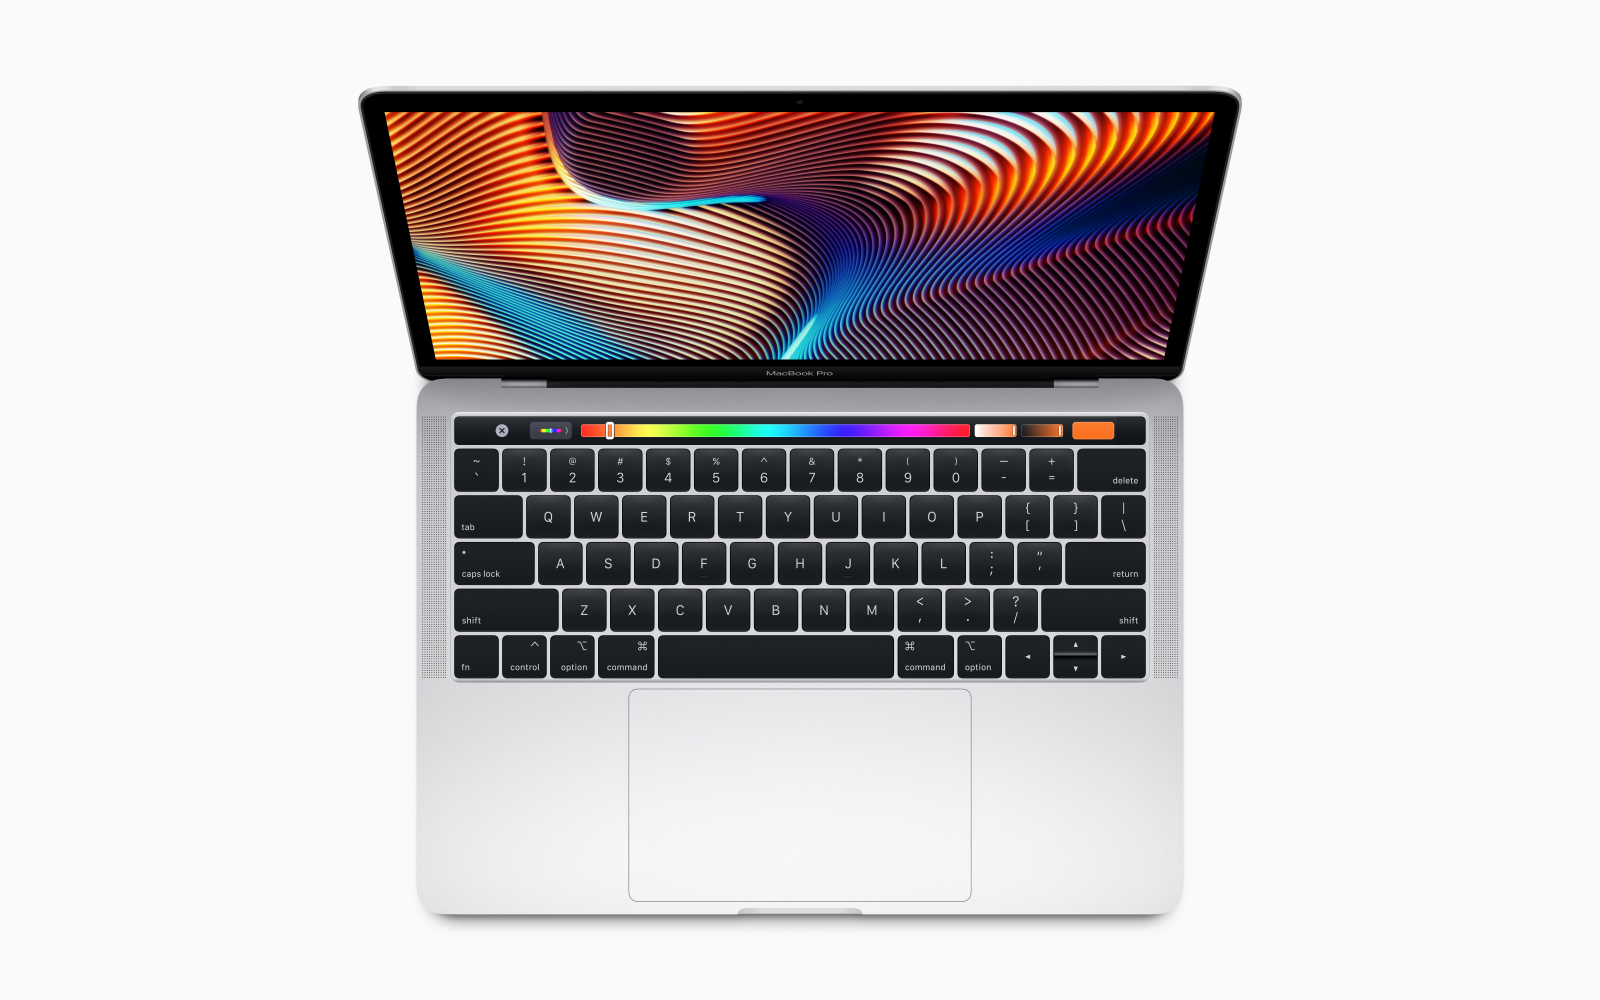 Macbook pro 2019 entry model